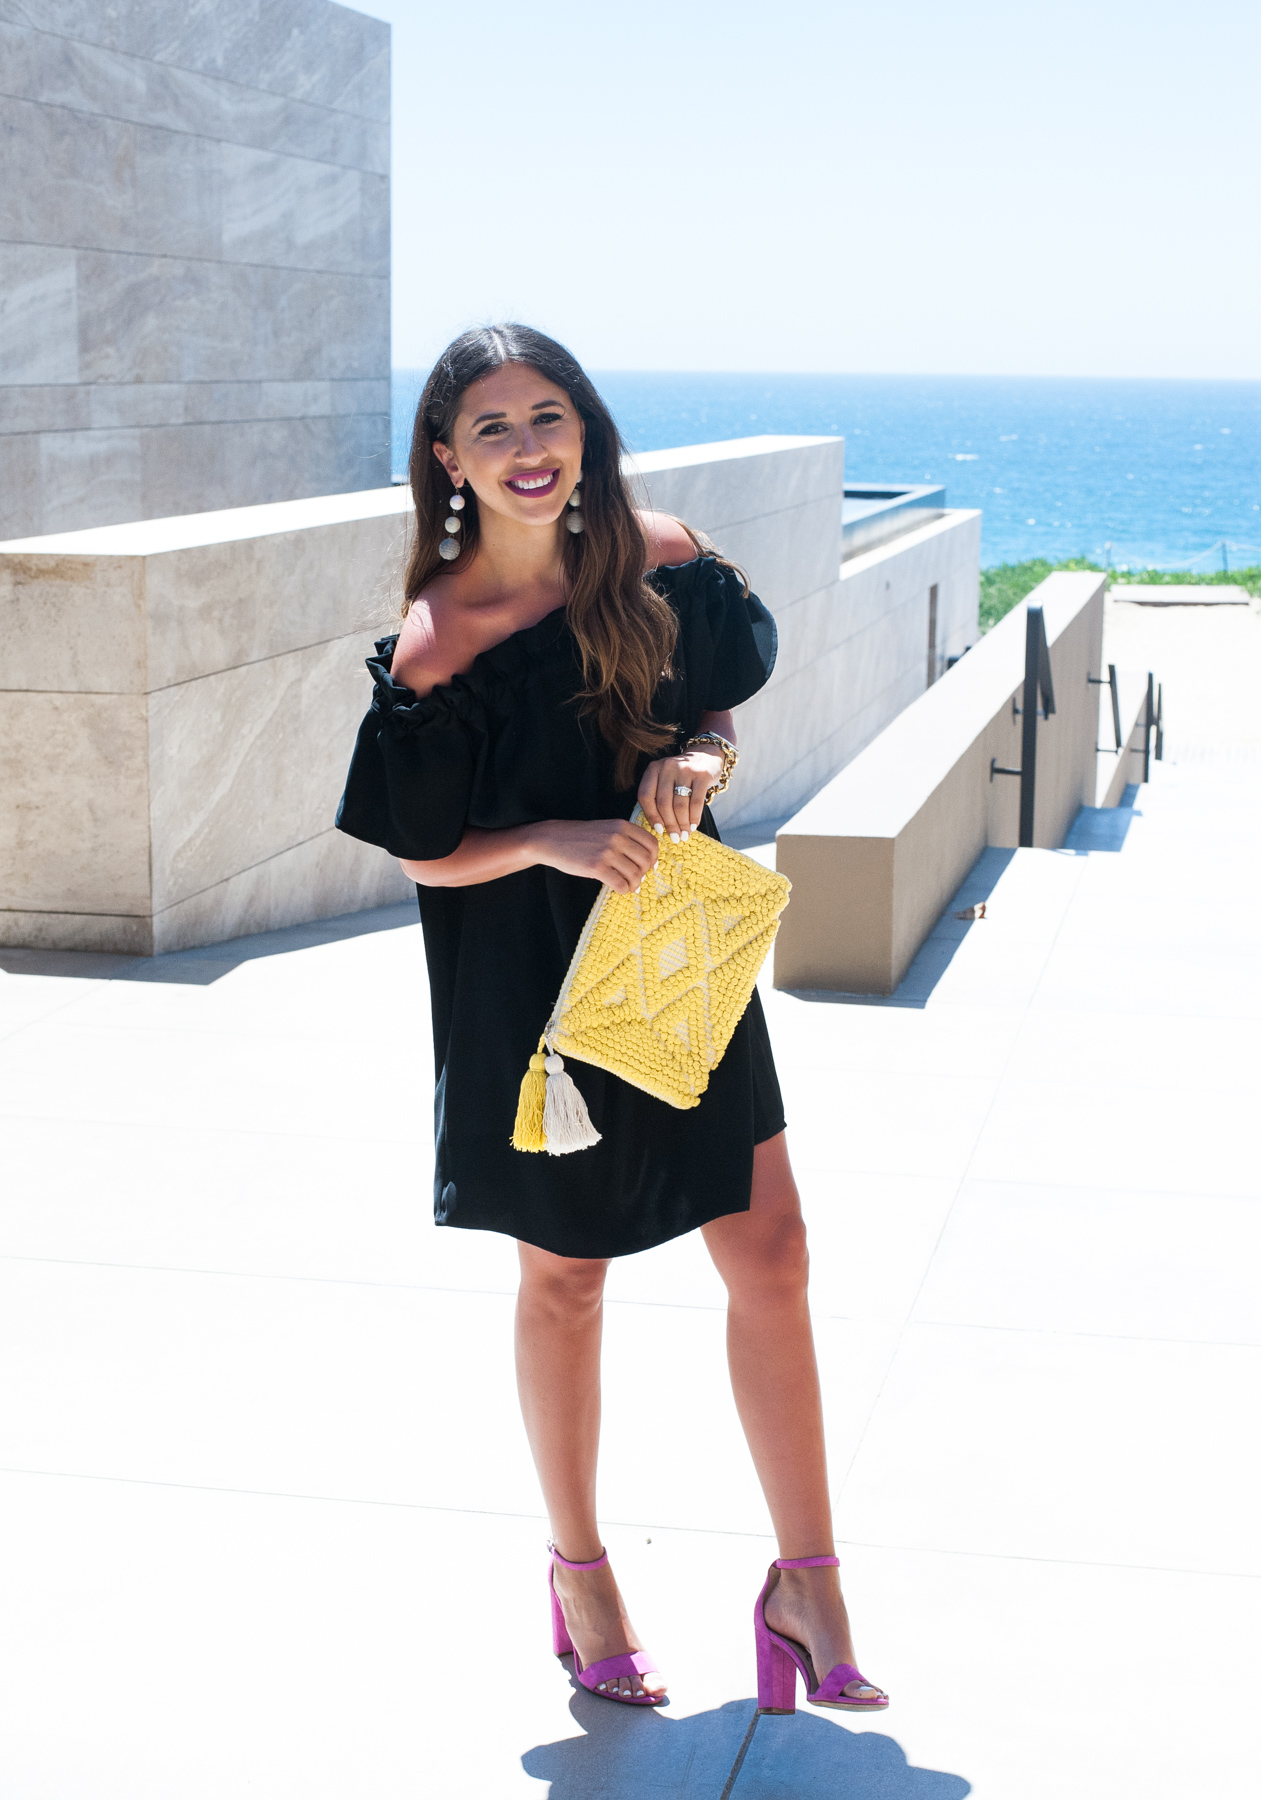 Dress Up Buttercup // A Houston-based fashion and inspiration blog developed to daily inspire your own personal style by Dede Raad | How to Add Color to Your LBD